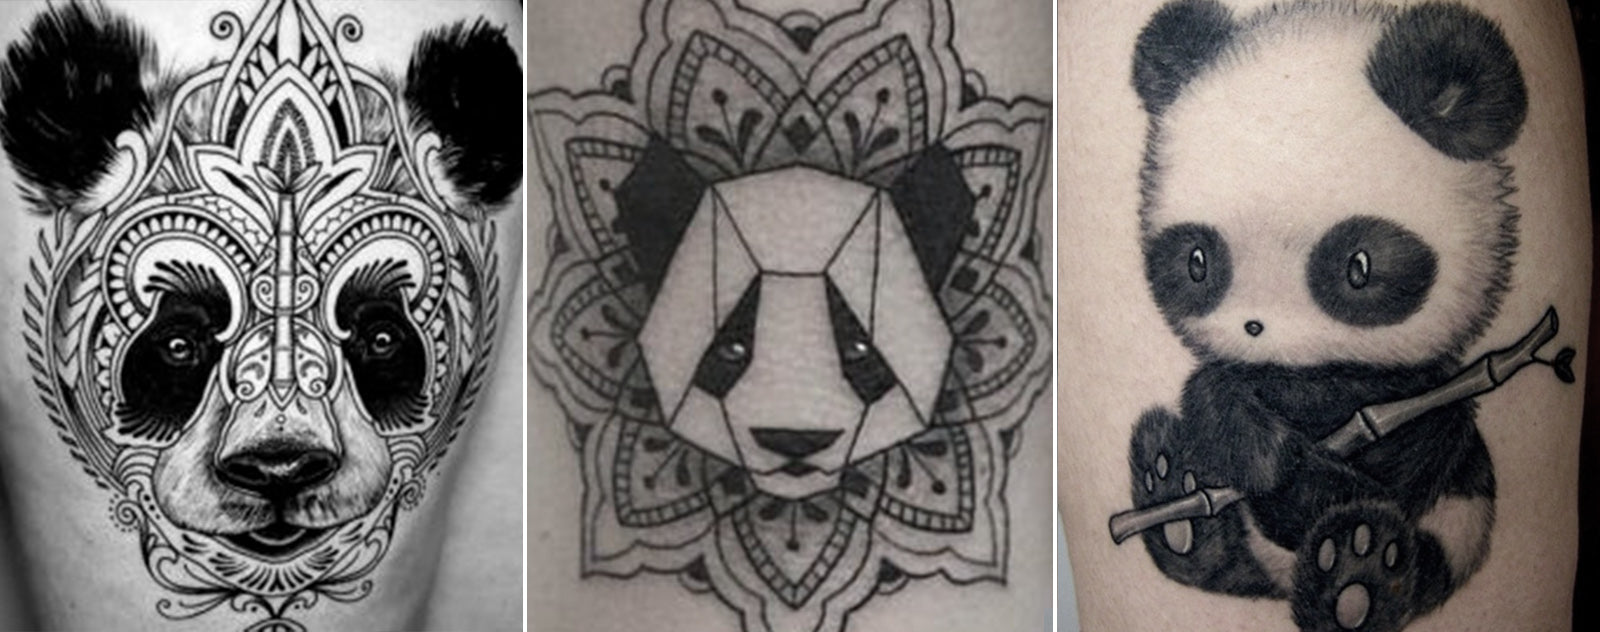 Tatouage Panda design